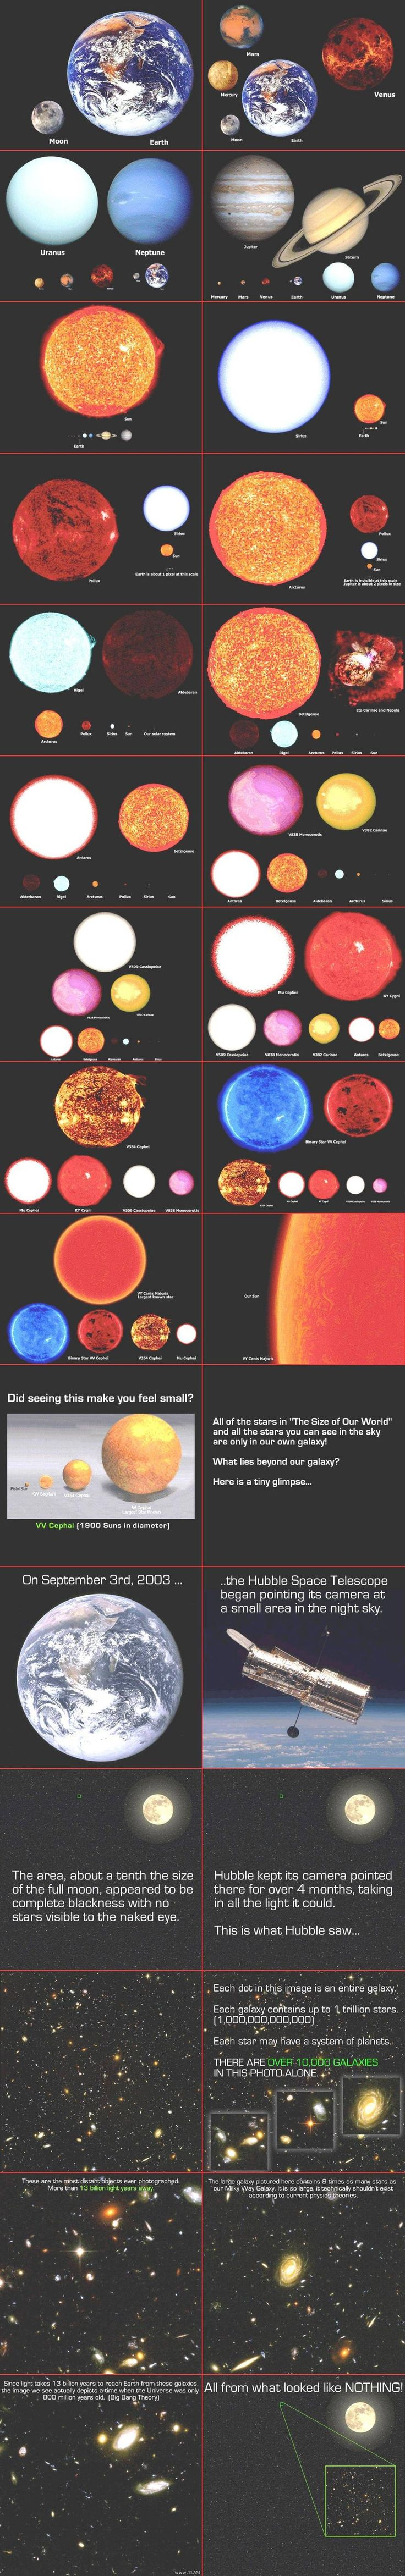 The Scale of Objects in the Universe